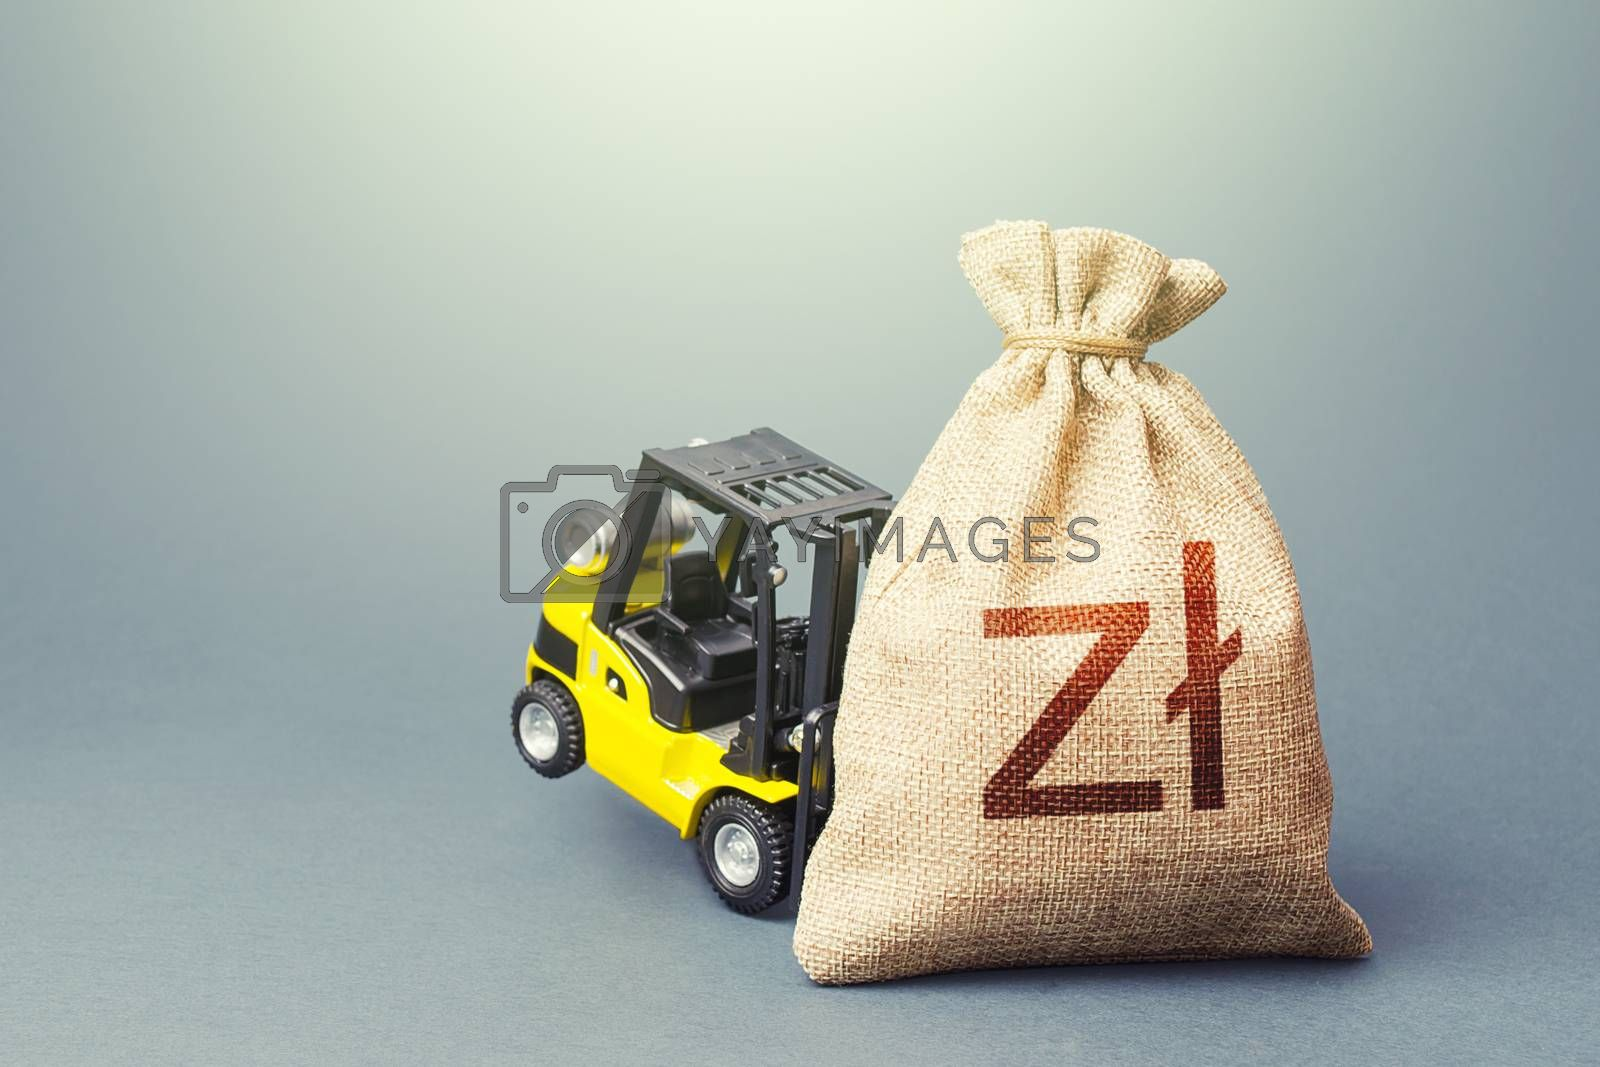 Yellow forklift unable to lift a polish zloty money bag. Strongest financial assistance, support of business and people. Interest rate. Stimulating economy. Helicopter money, subsidies soft loans.